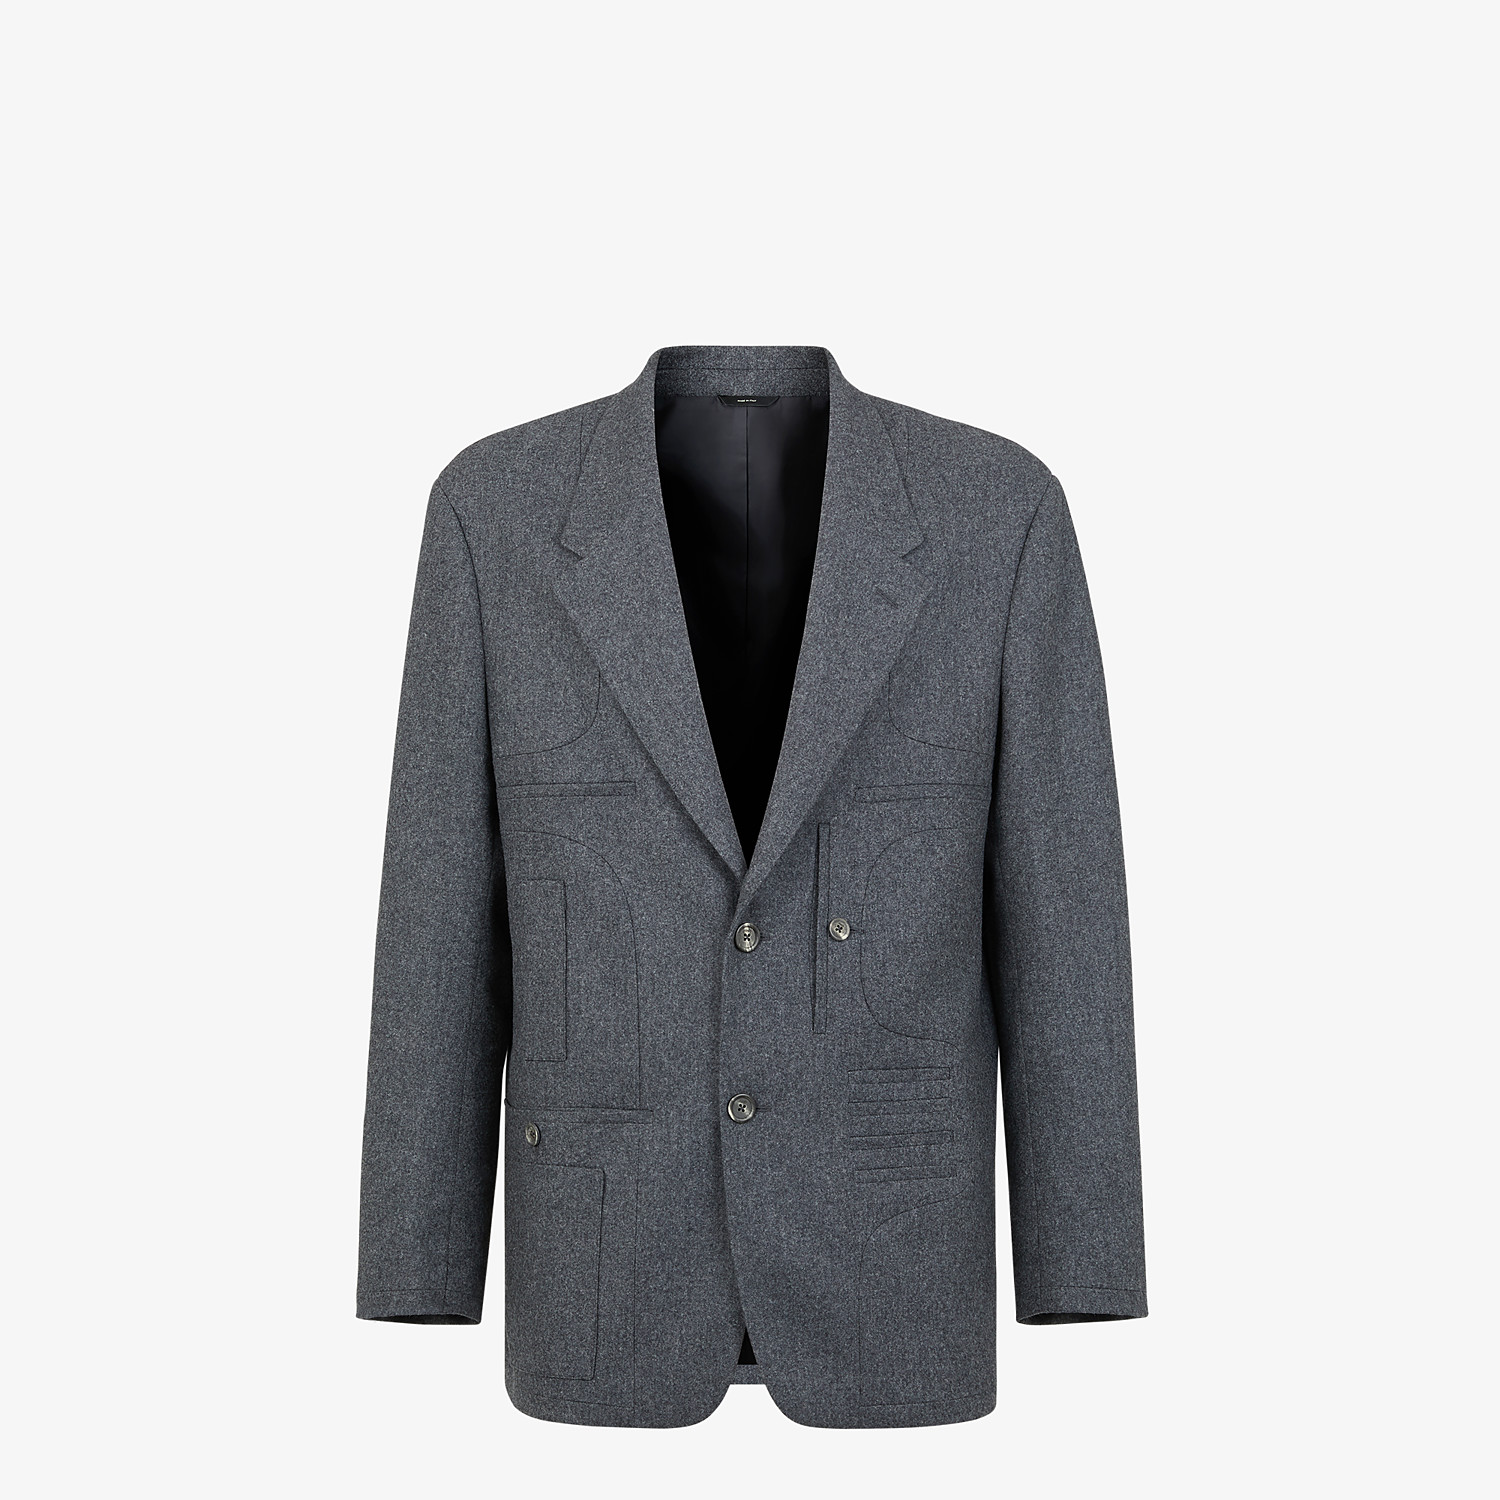 FENDI JACKET - Grey wool blazer - view 1 detail